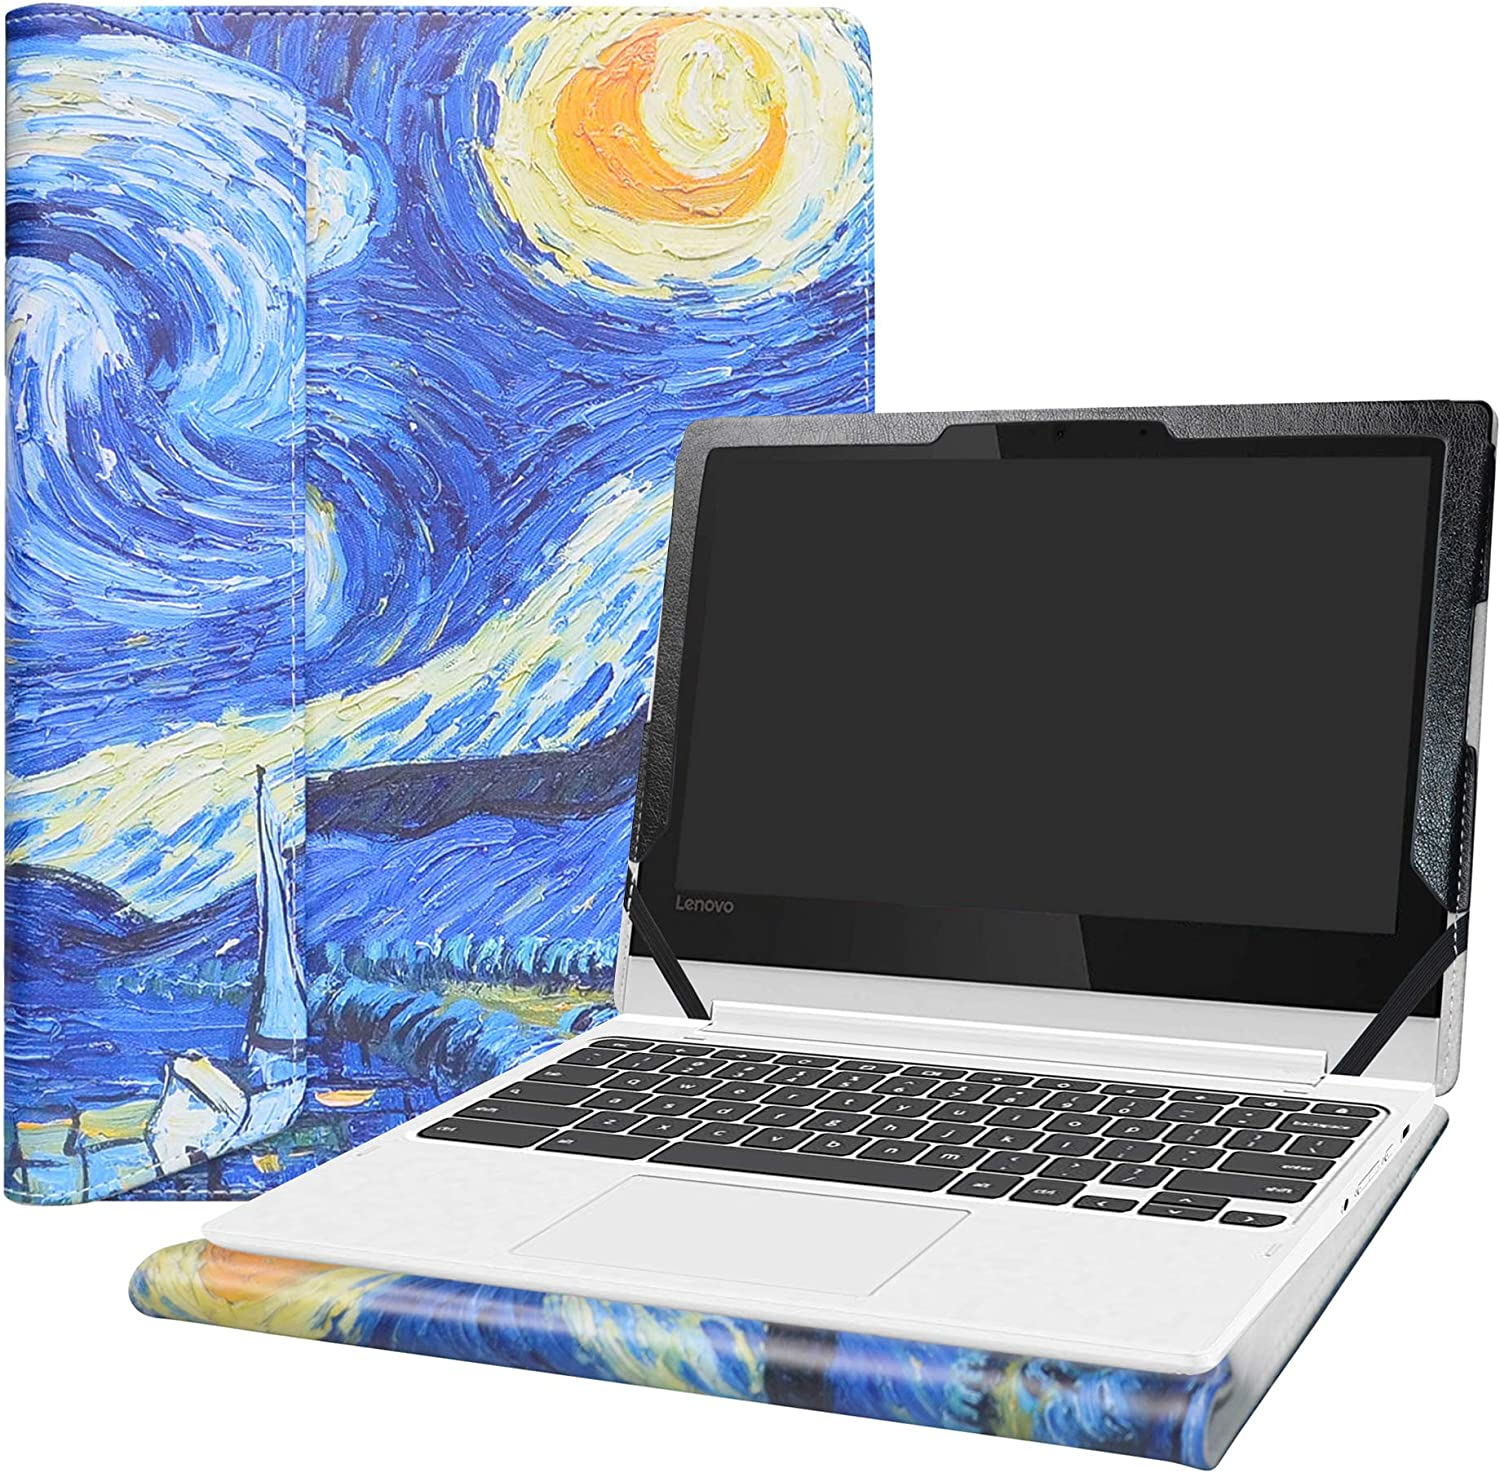 "Alapmk Protective Case Cover for 11.6"" Lenovo Chromebook C330 Series Laptop[Warning:Not fit Lenovo Chromebook S330],Starry Night"